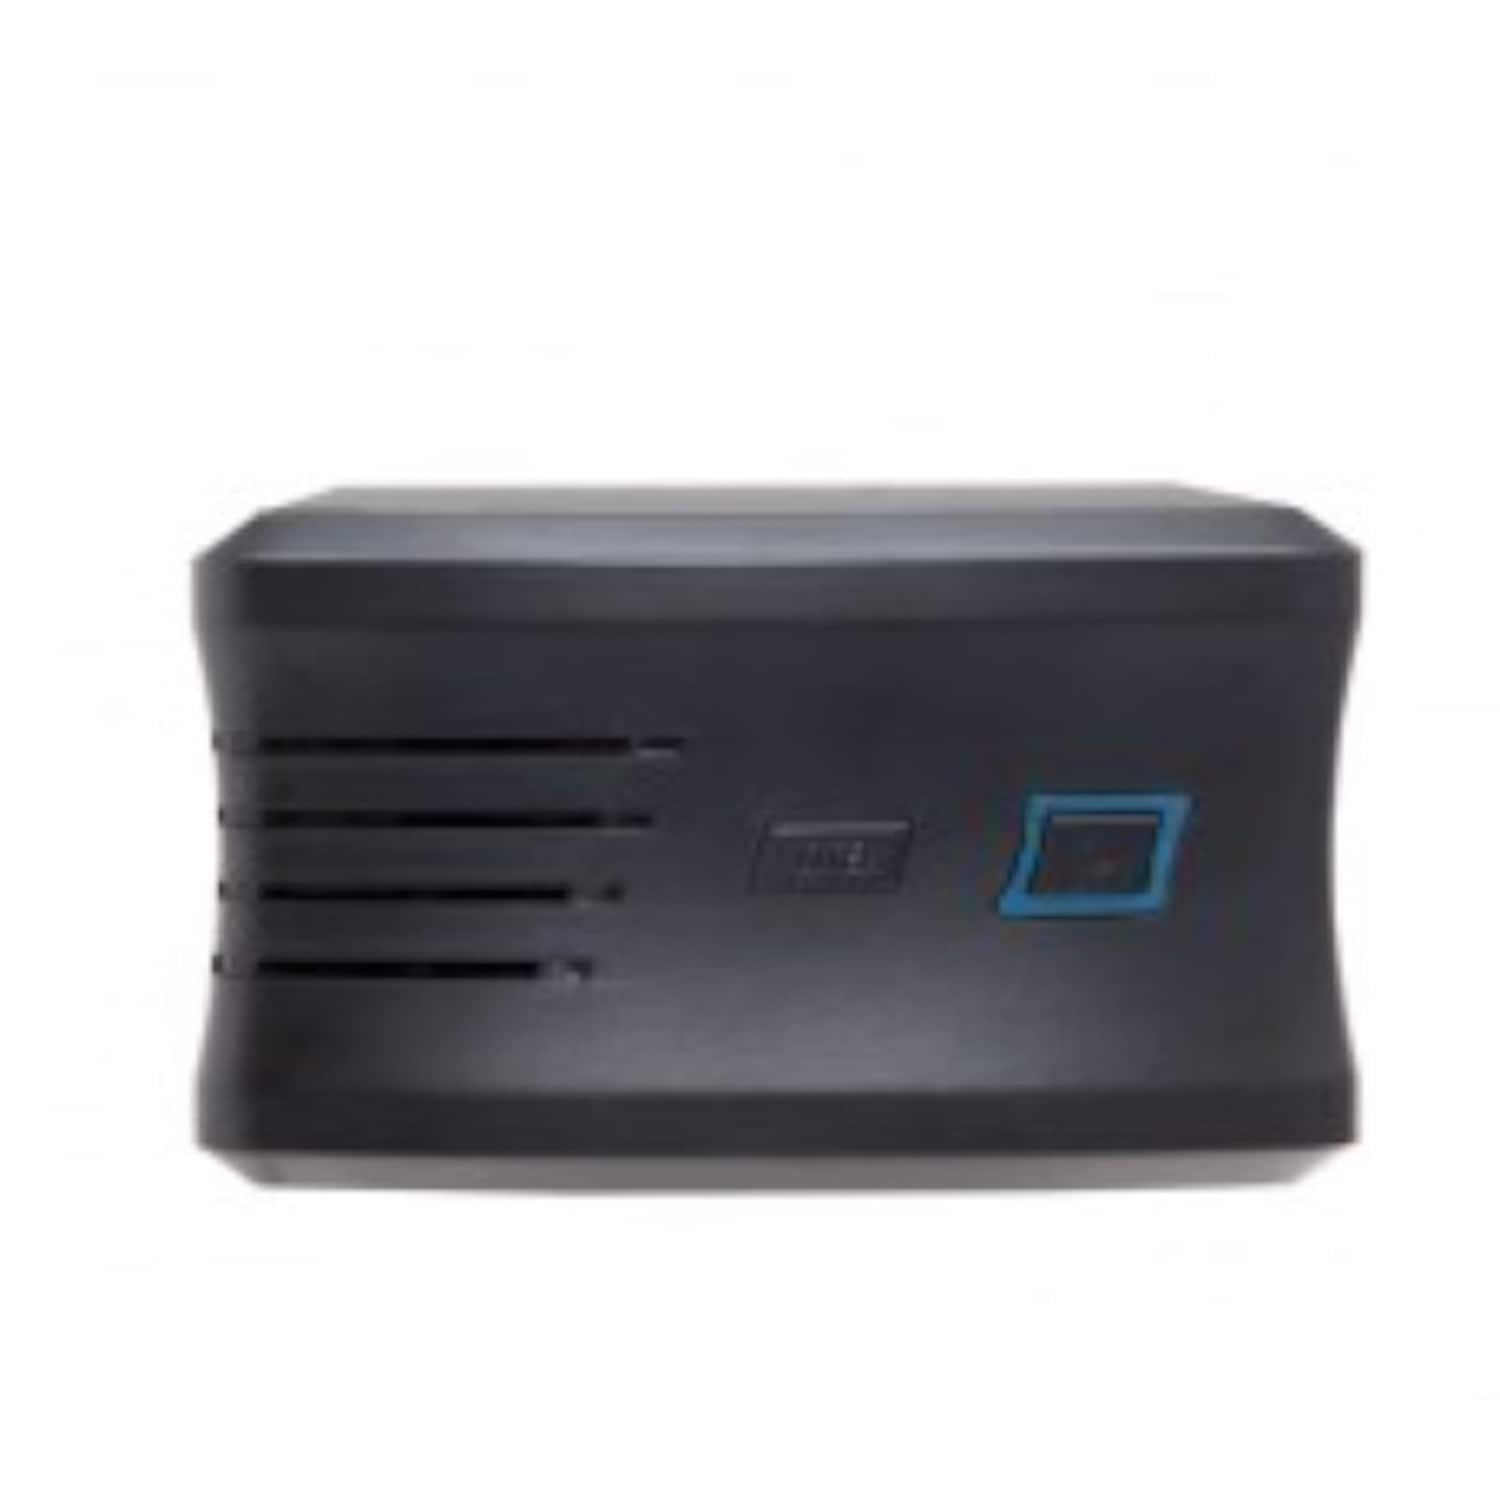 SYBA Multimedia DAS Array - 2 x HDD Supported - 4 TB Supported HDD Ca https://ak1.ostkcdn.com/images/products/167/718/P17915492.jpg?impolicy=medium